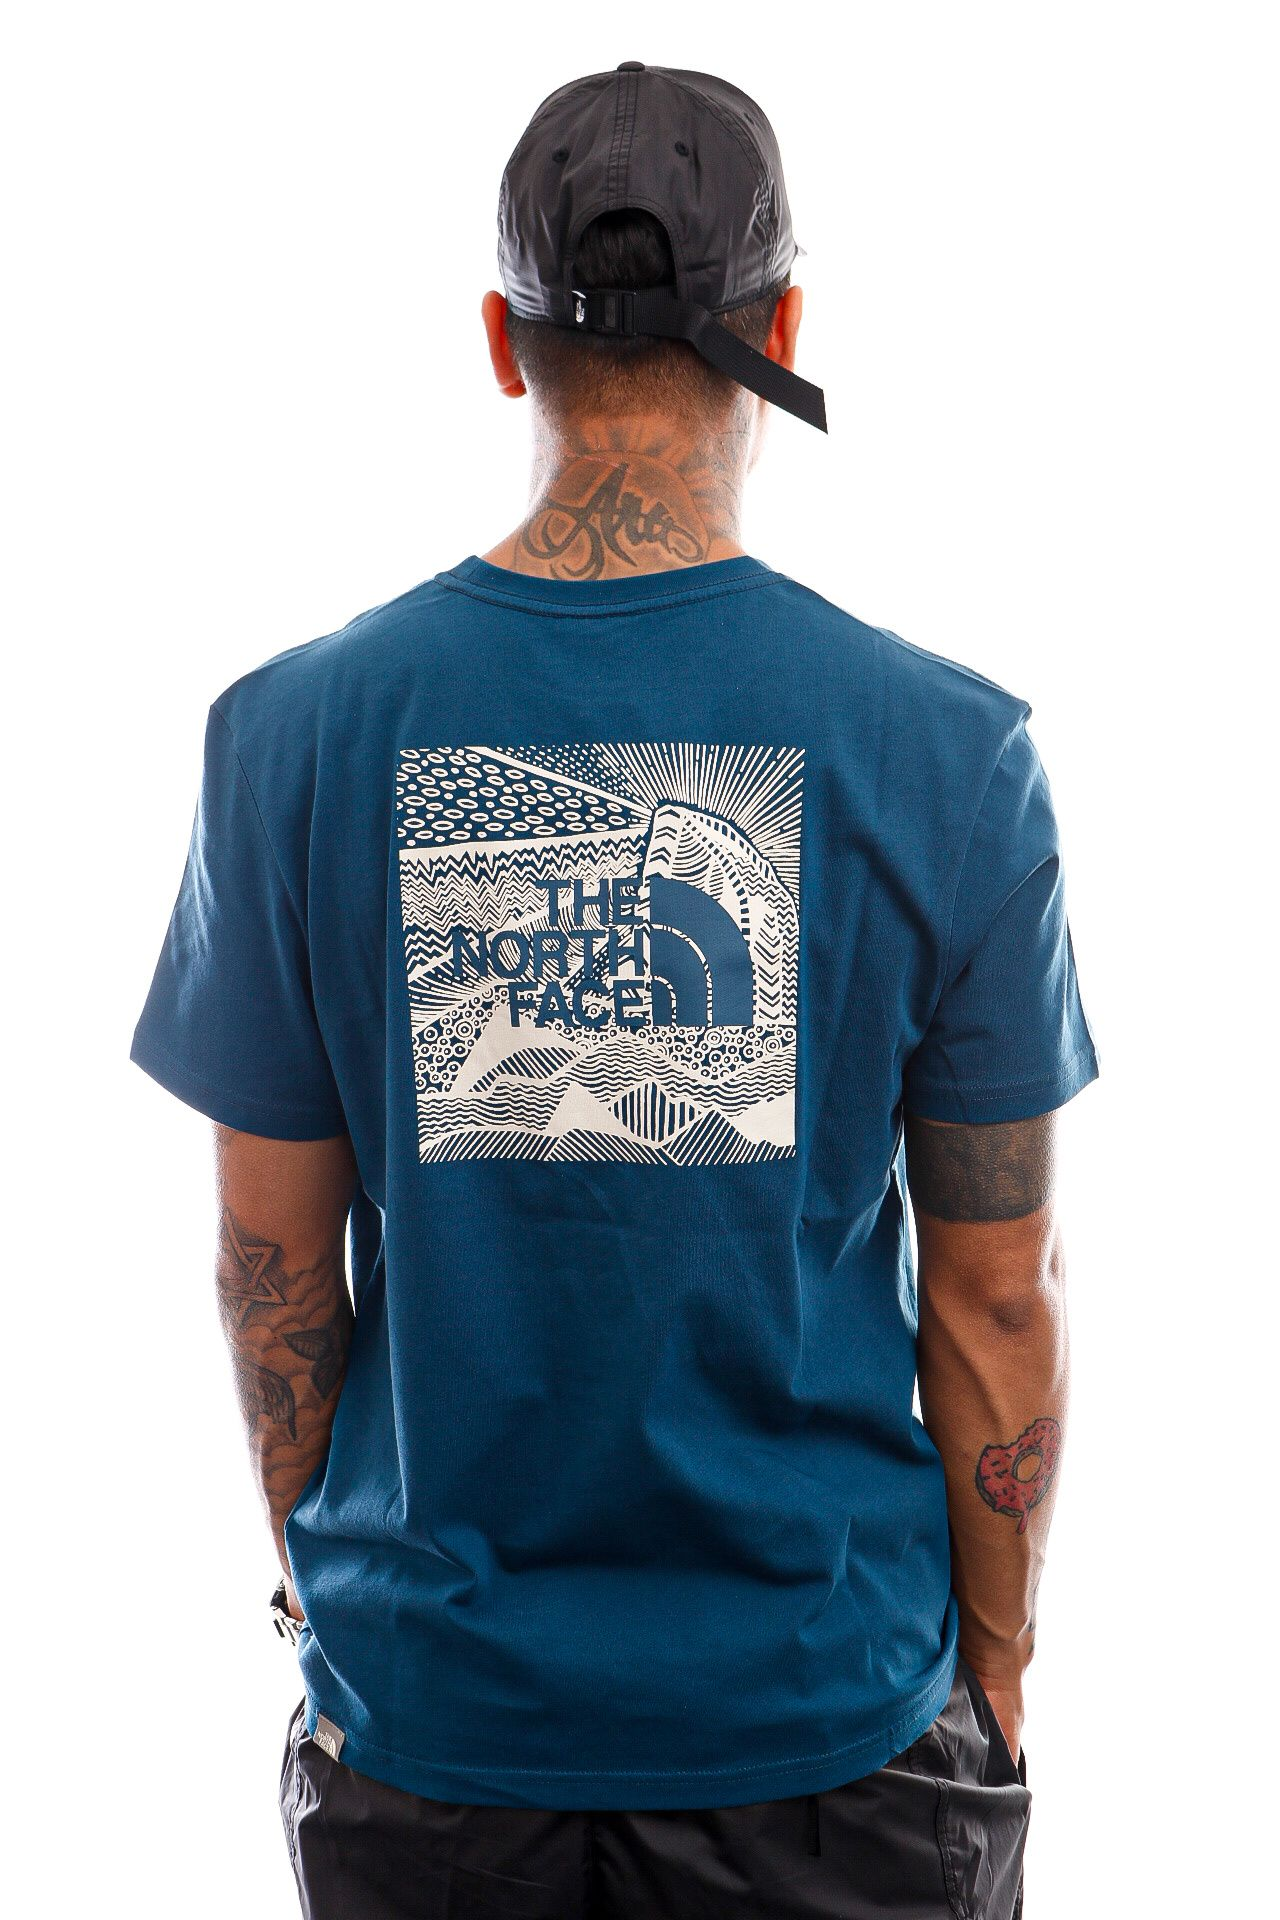 Afbeelding van The North Face T-shirt Mens S/S Redbox Celebration Tee Monterey Blue NF0A2ZXEBH71